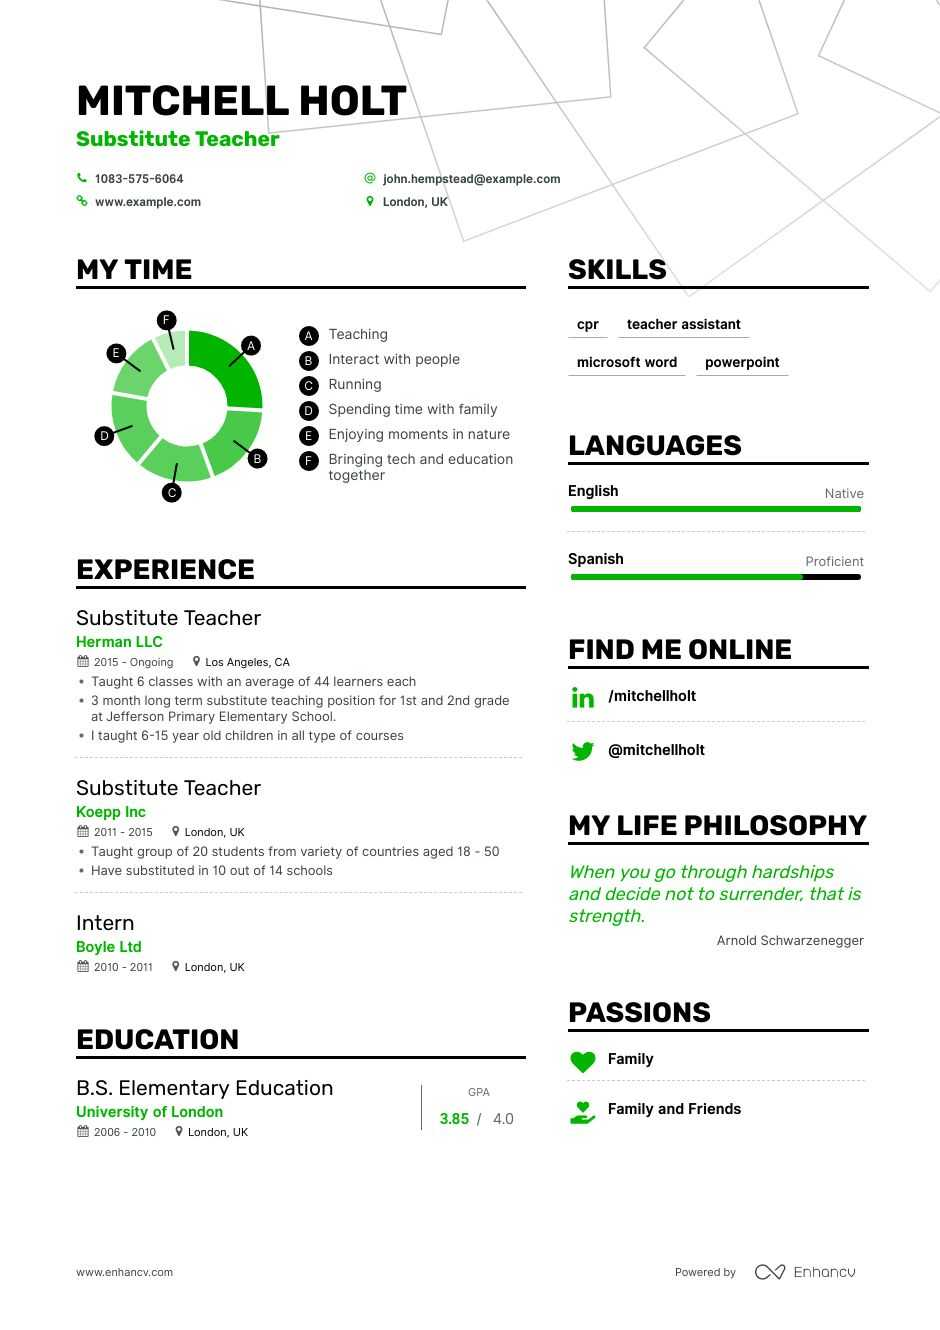 substitute teacher resume example for enhancv objective some interests good summary Resume Substitute Teacher Resume Objective